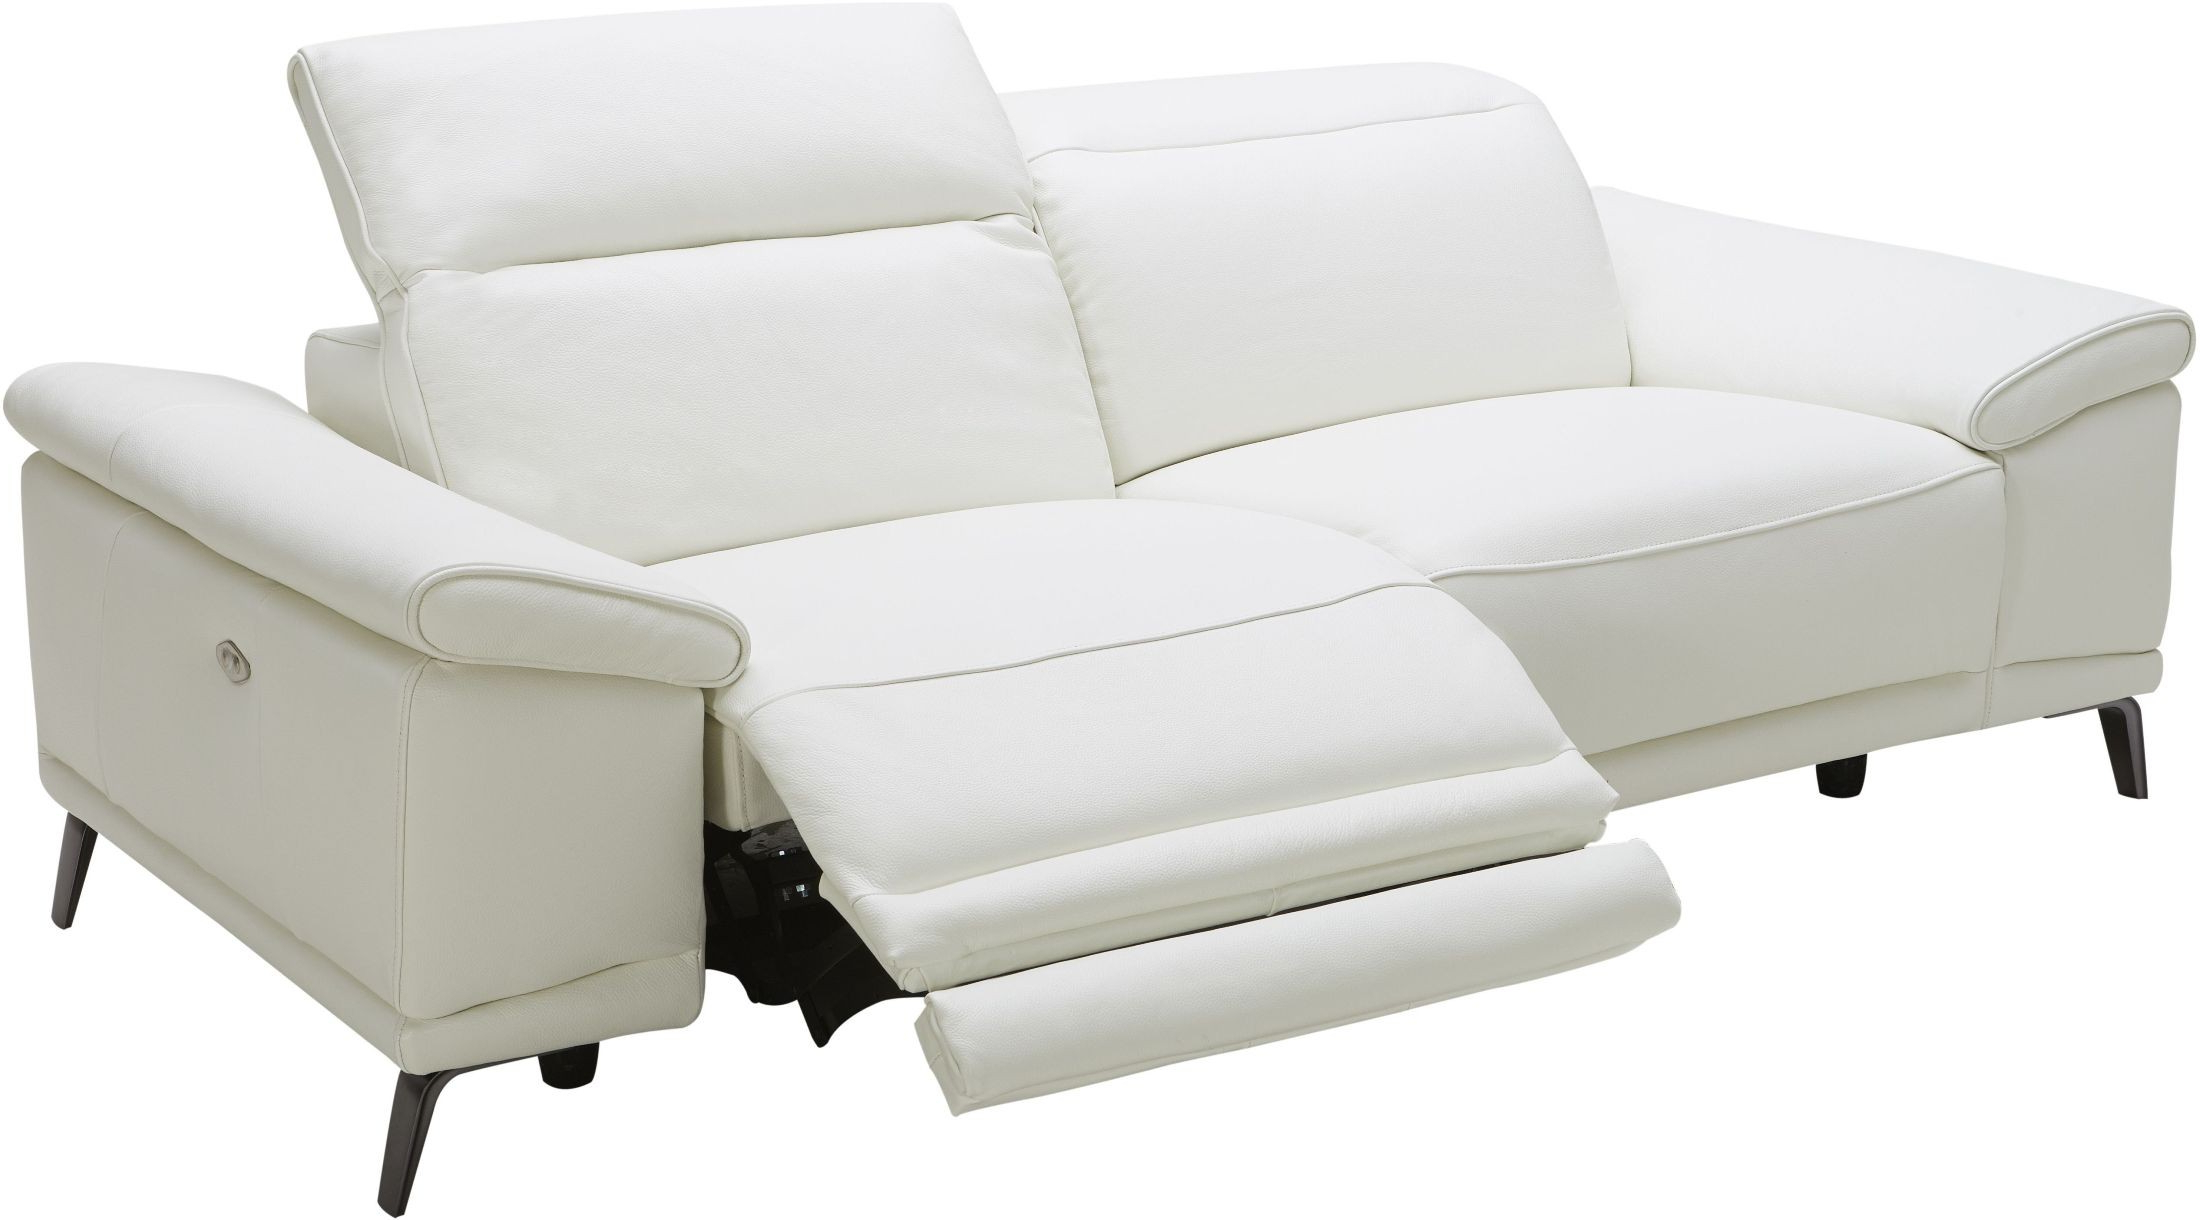 Gaia White Leather Power Reclining Sofa, 18253 S, J&m Inside Most Recently Released Power Reclining Sofas (View 10 of 20)